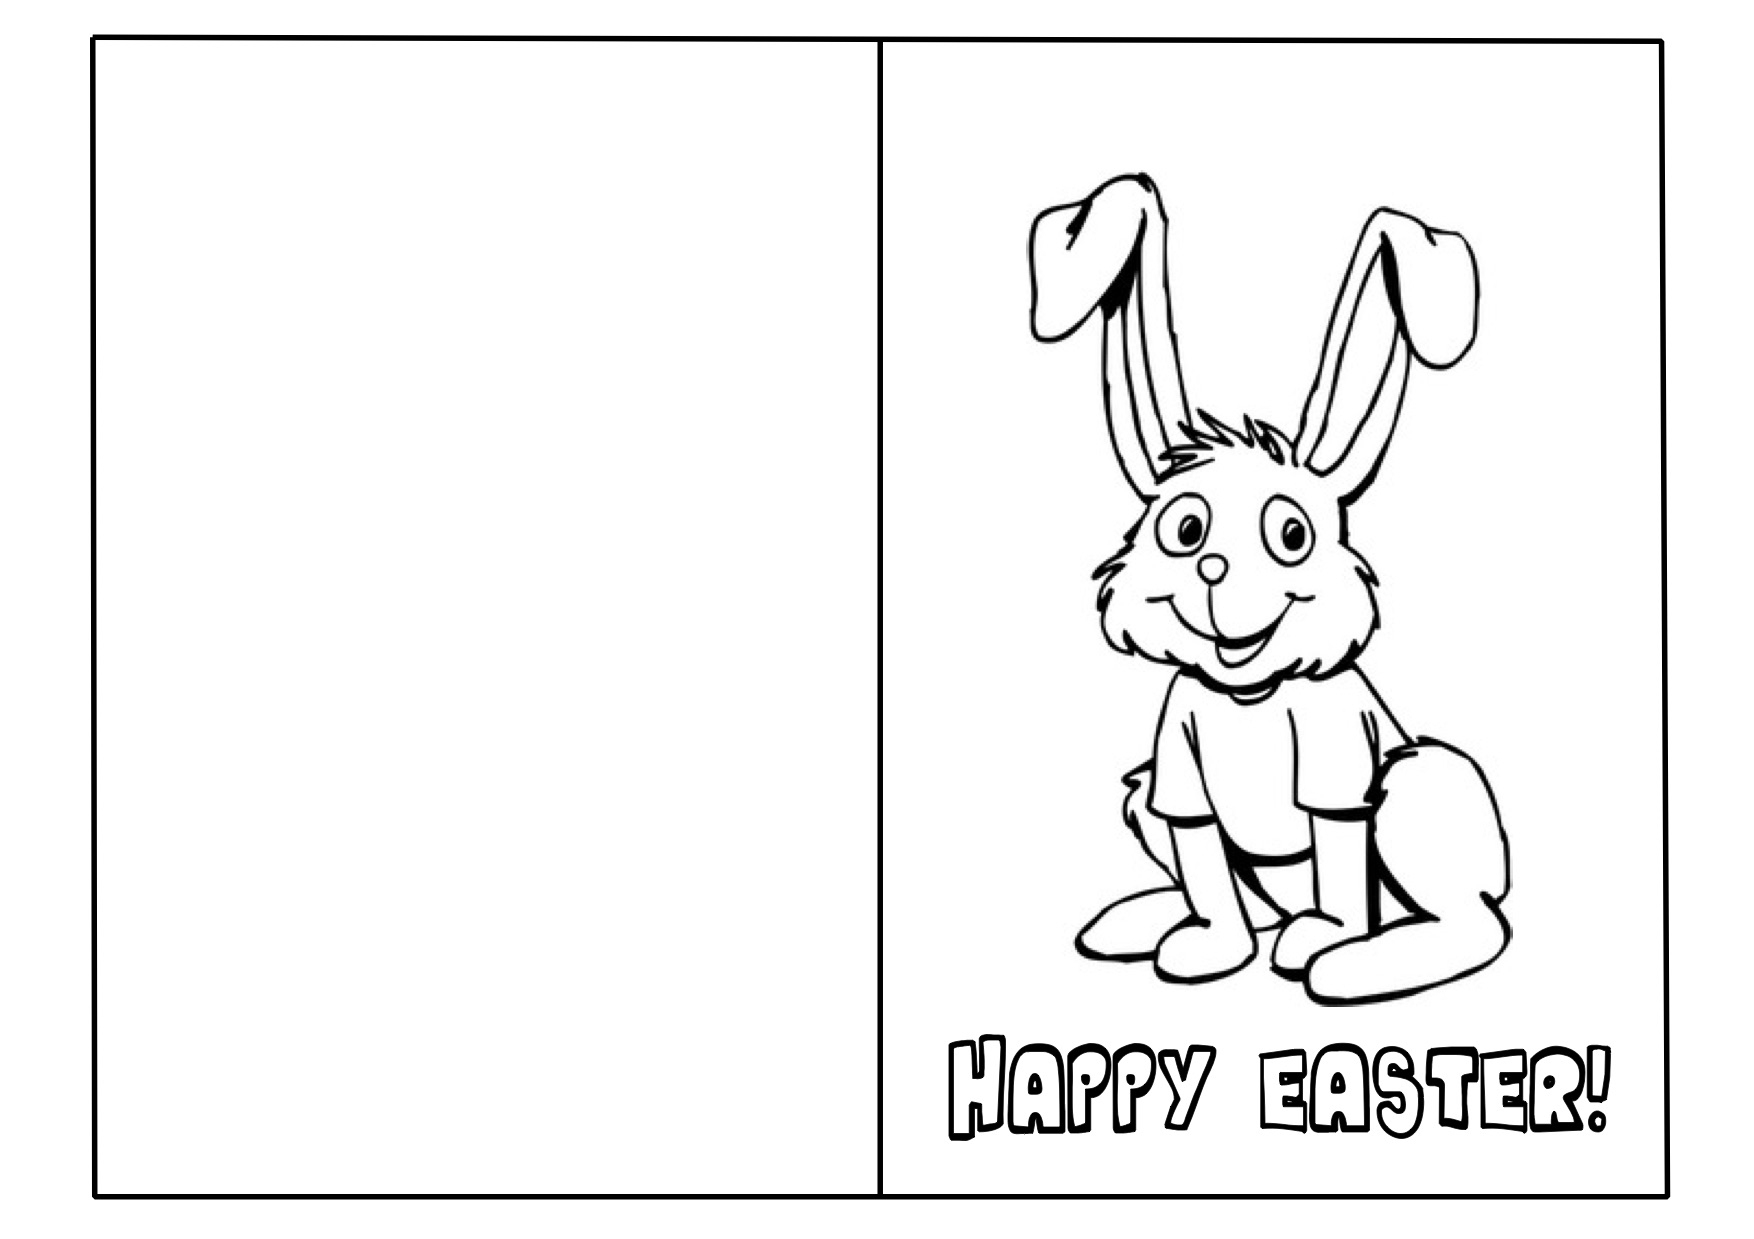 32 Free Printable Easter Cards | Kittybabylove - Printable Easter Greeting Cards Free